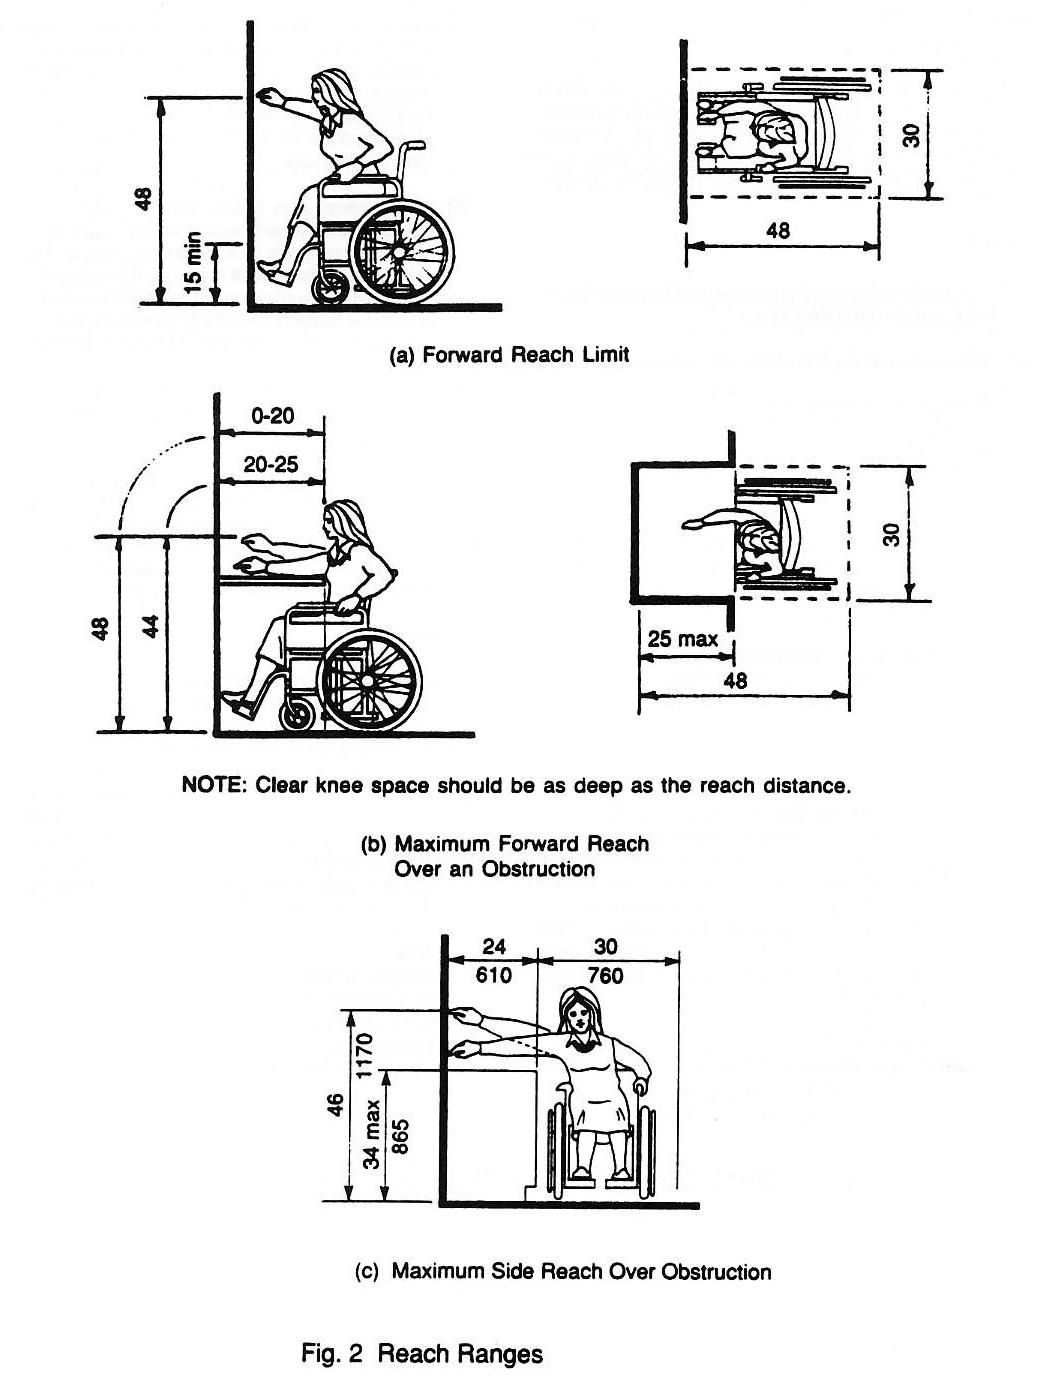 ADA-Accessibility-Guidelines.jpg 1,043×1,381 pixels | Space Planning ...